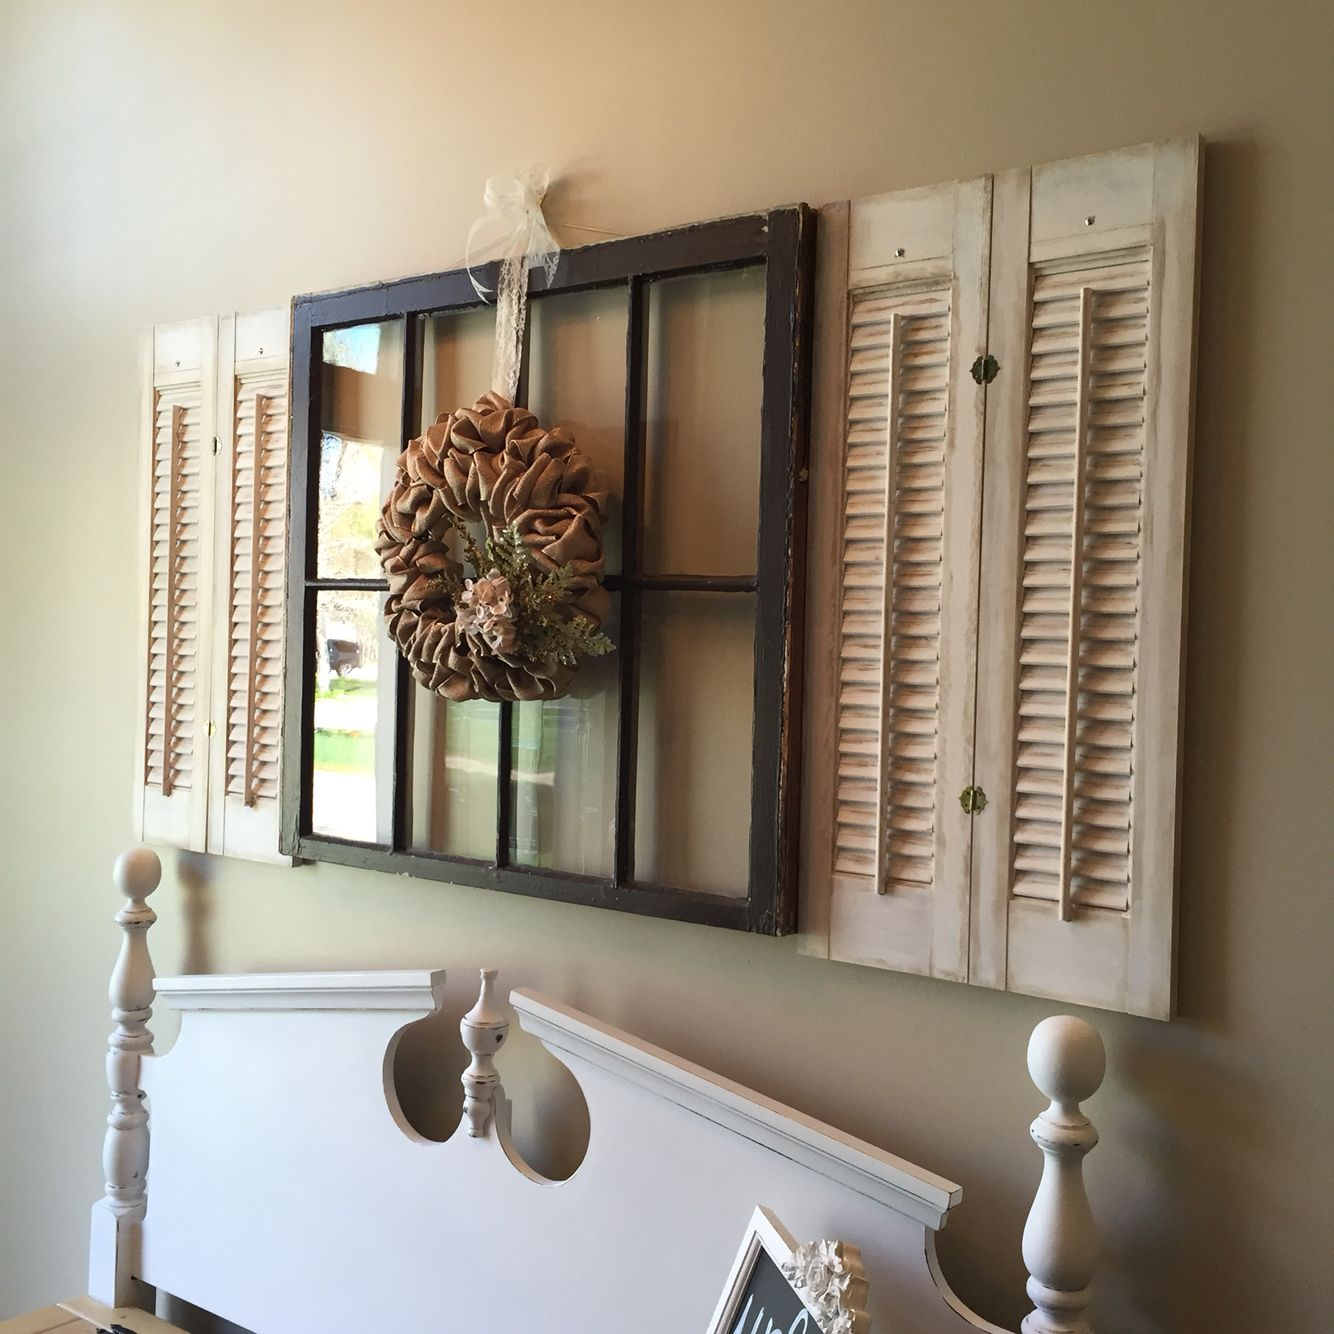 Antique window accented by a burlap wreath I made. Old ...